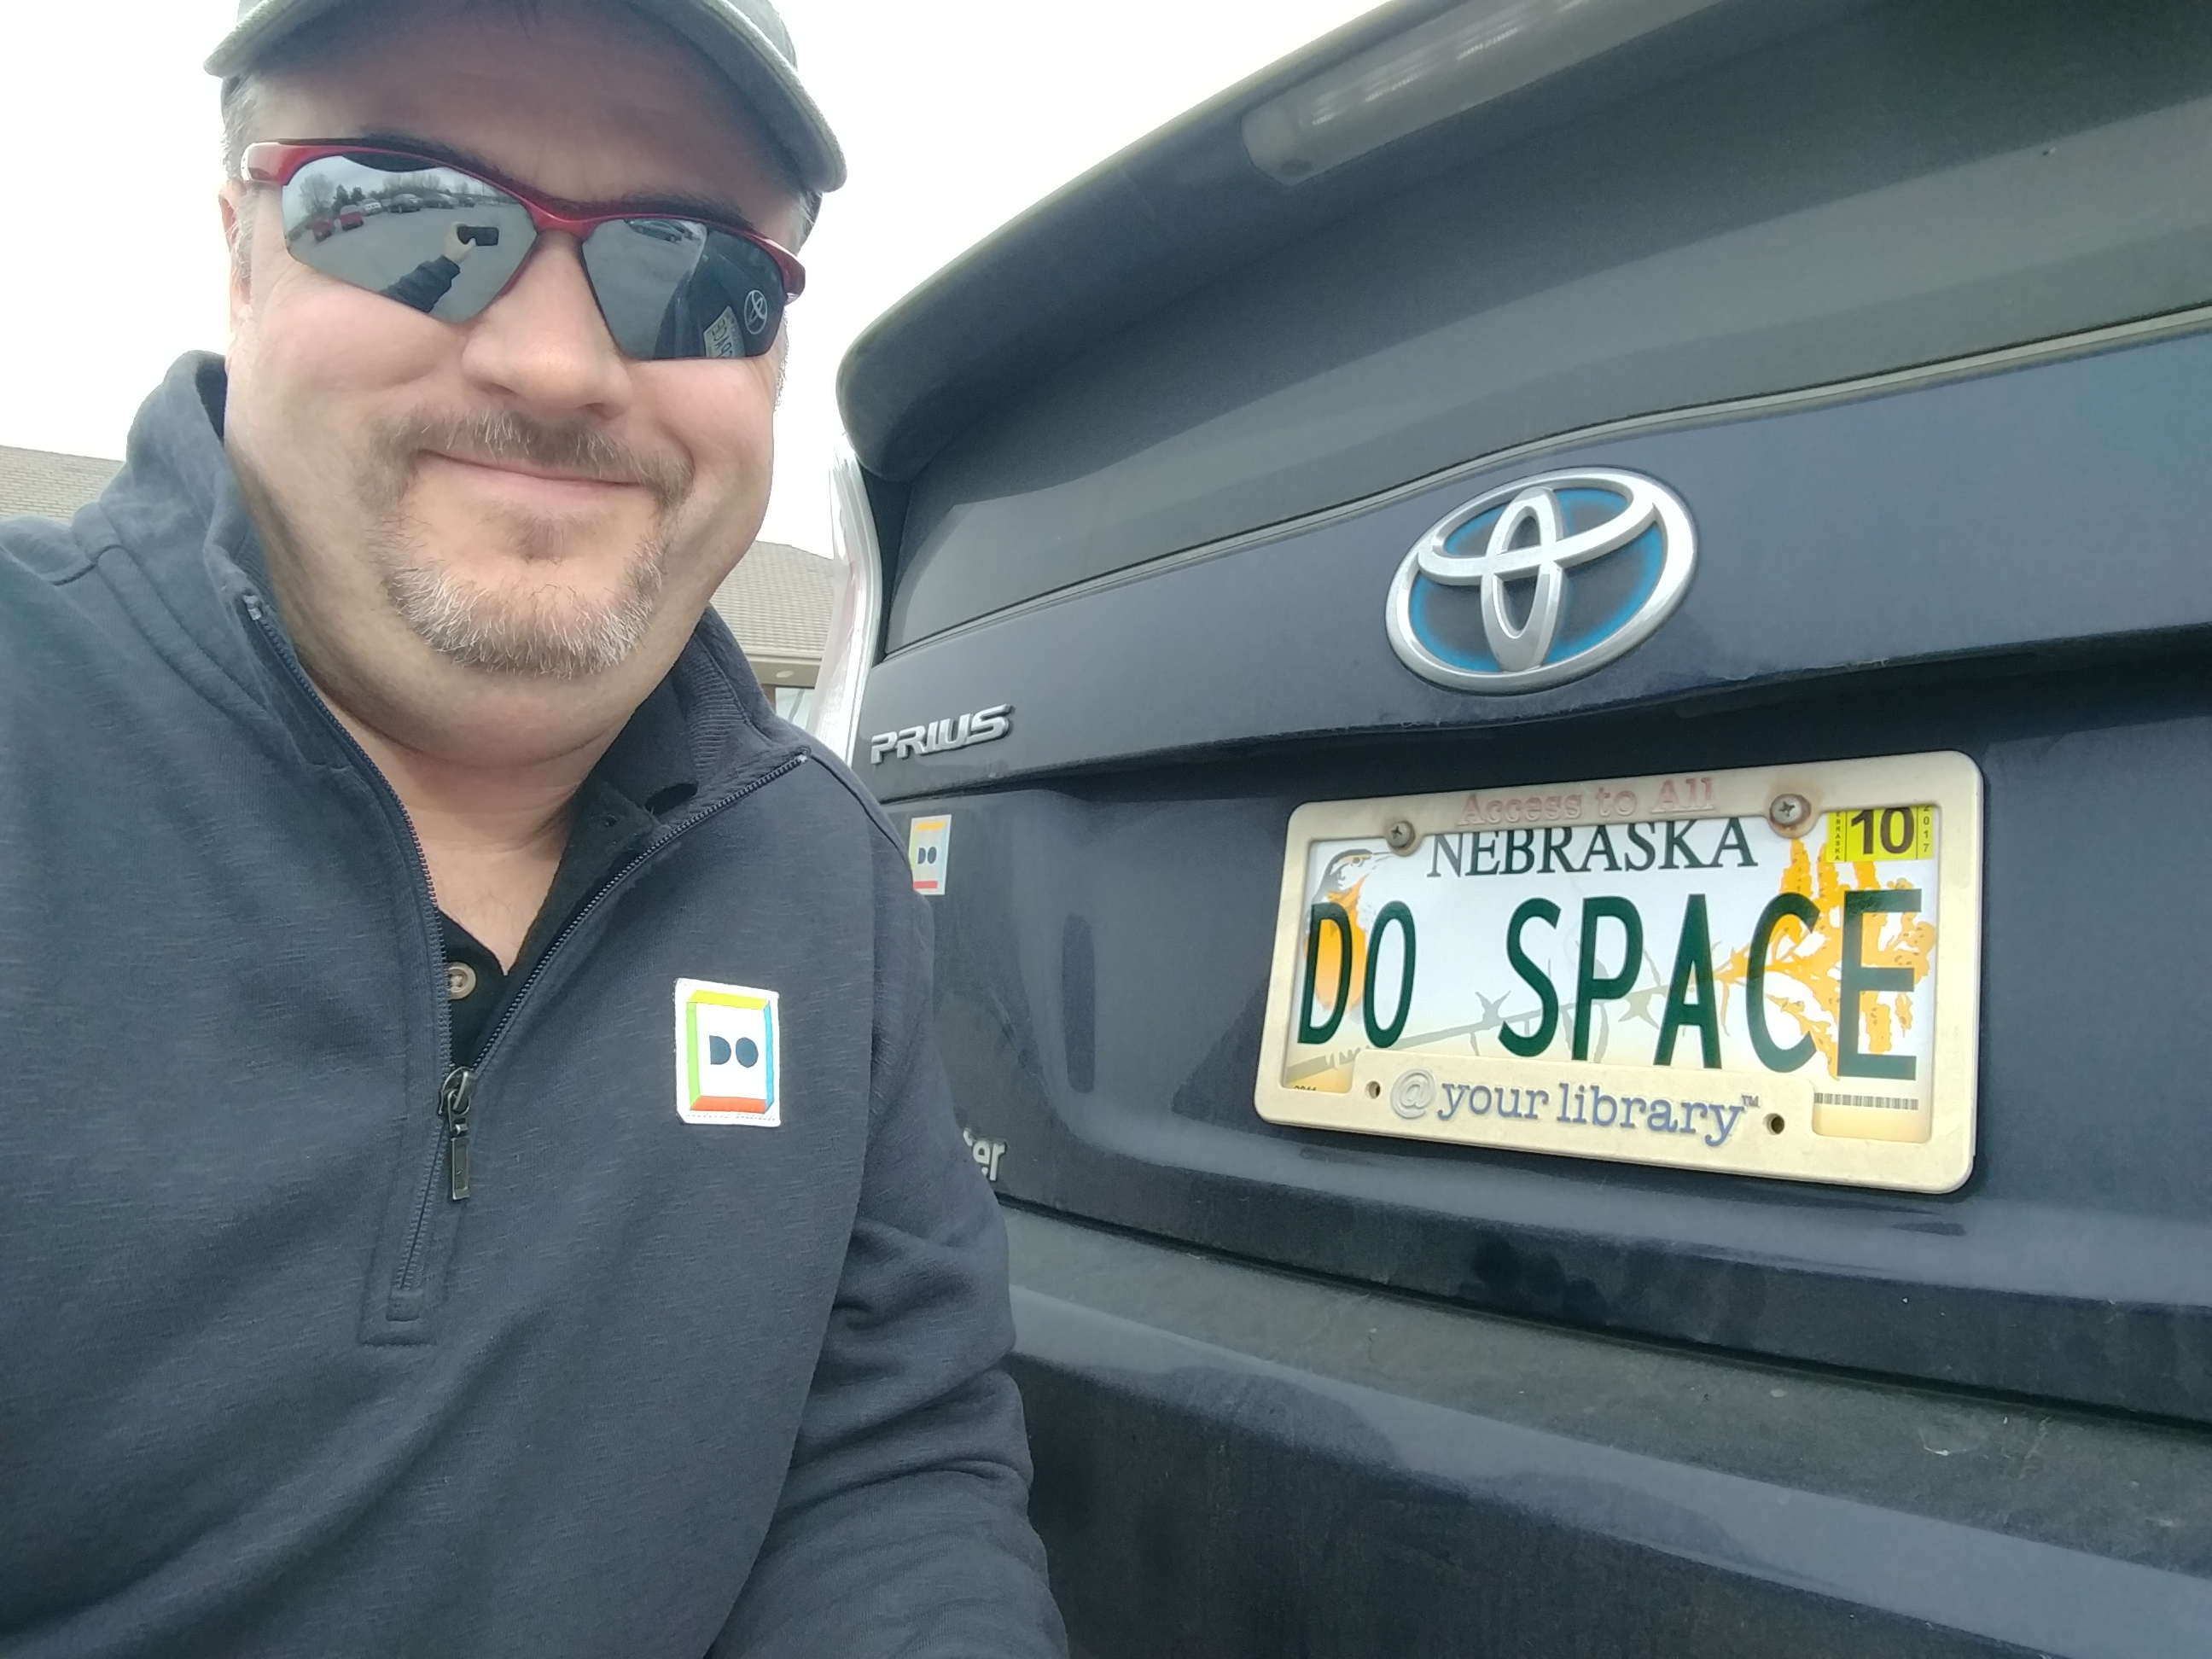 Do Space on the road